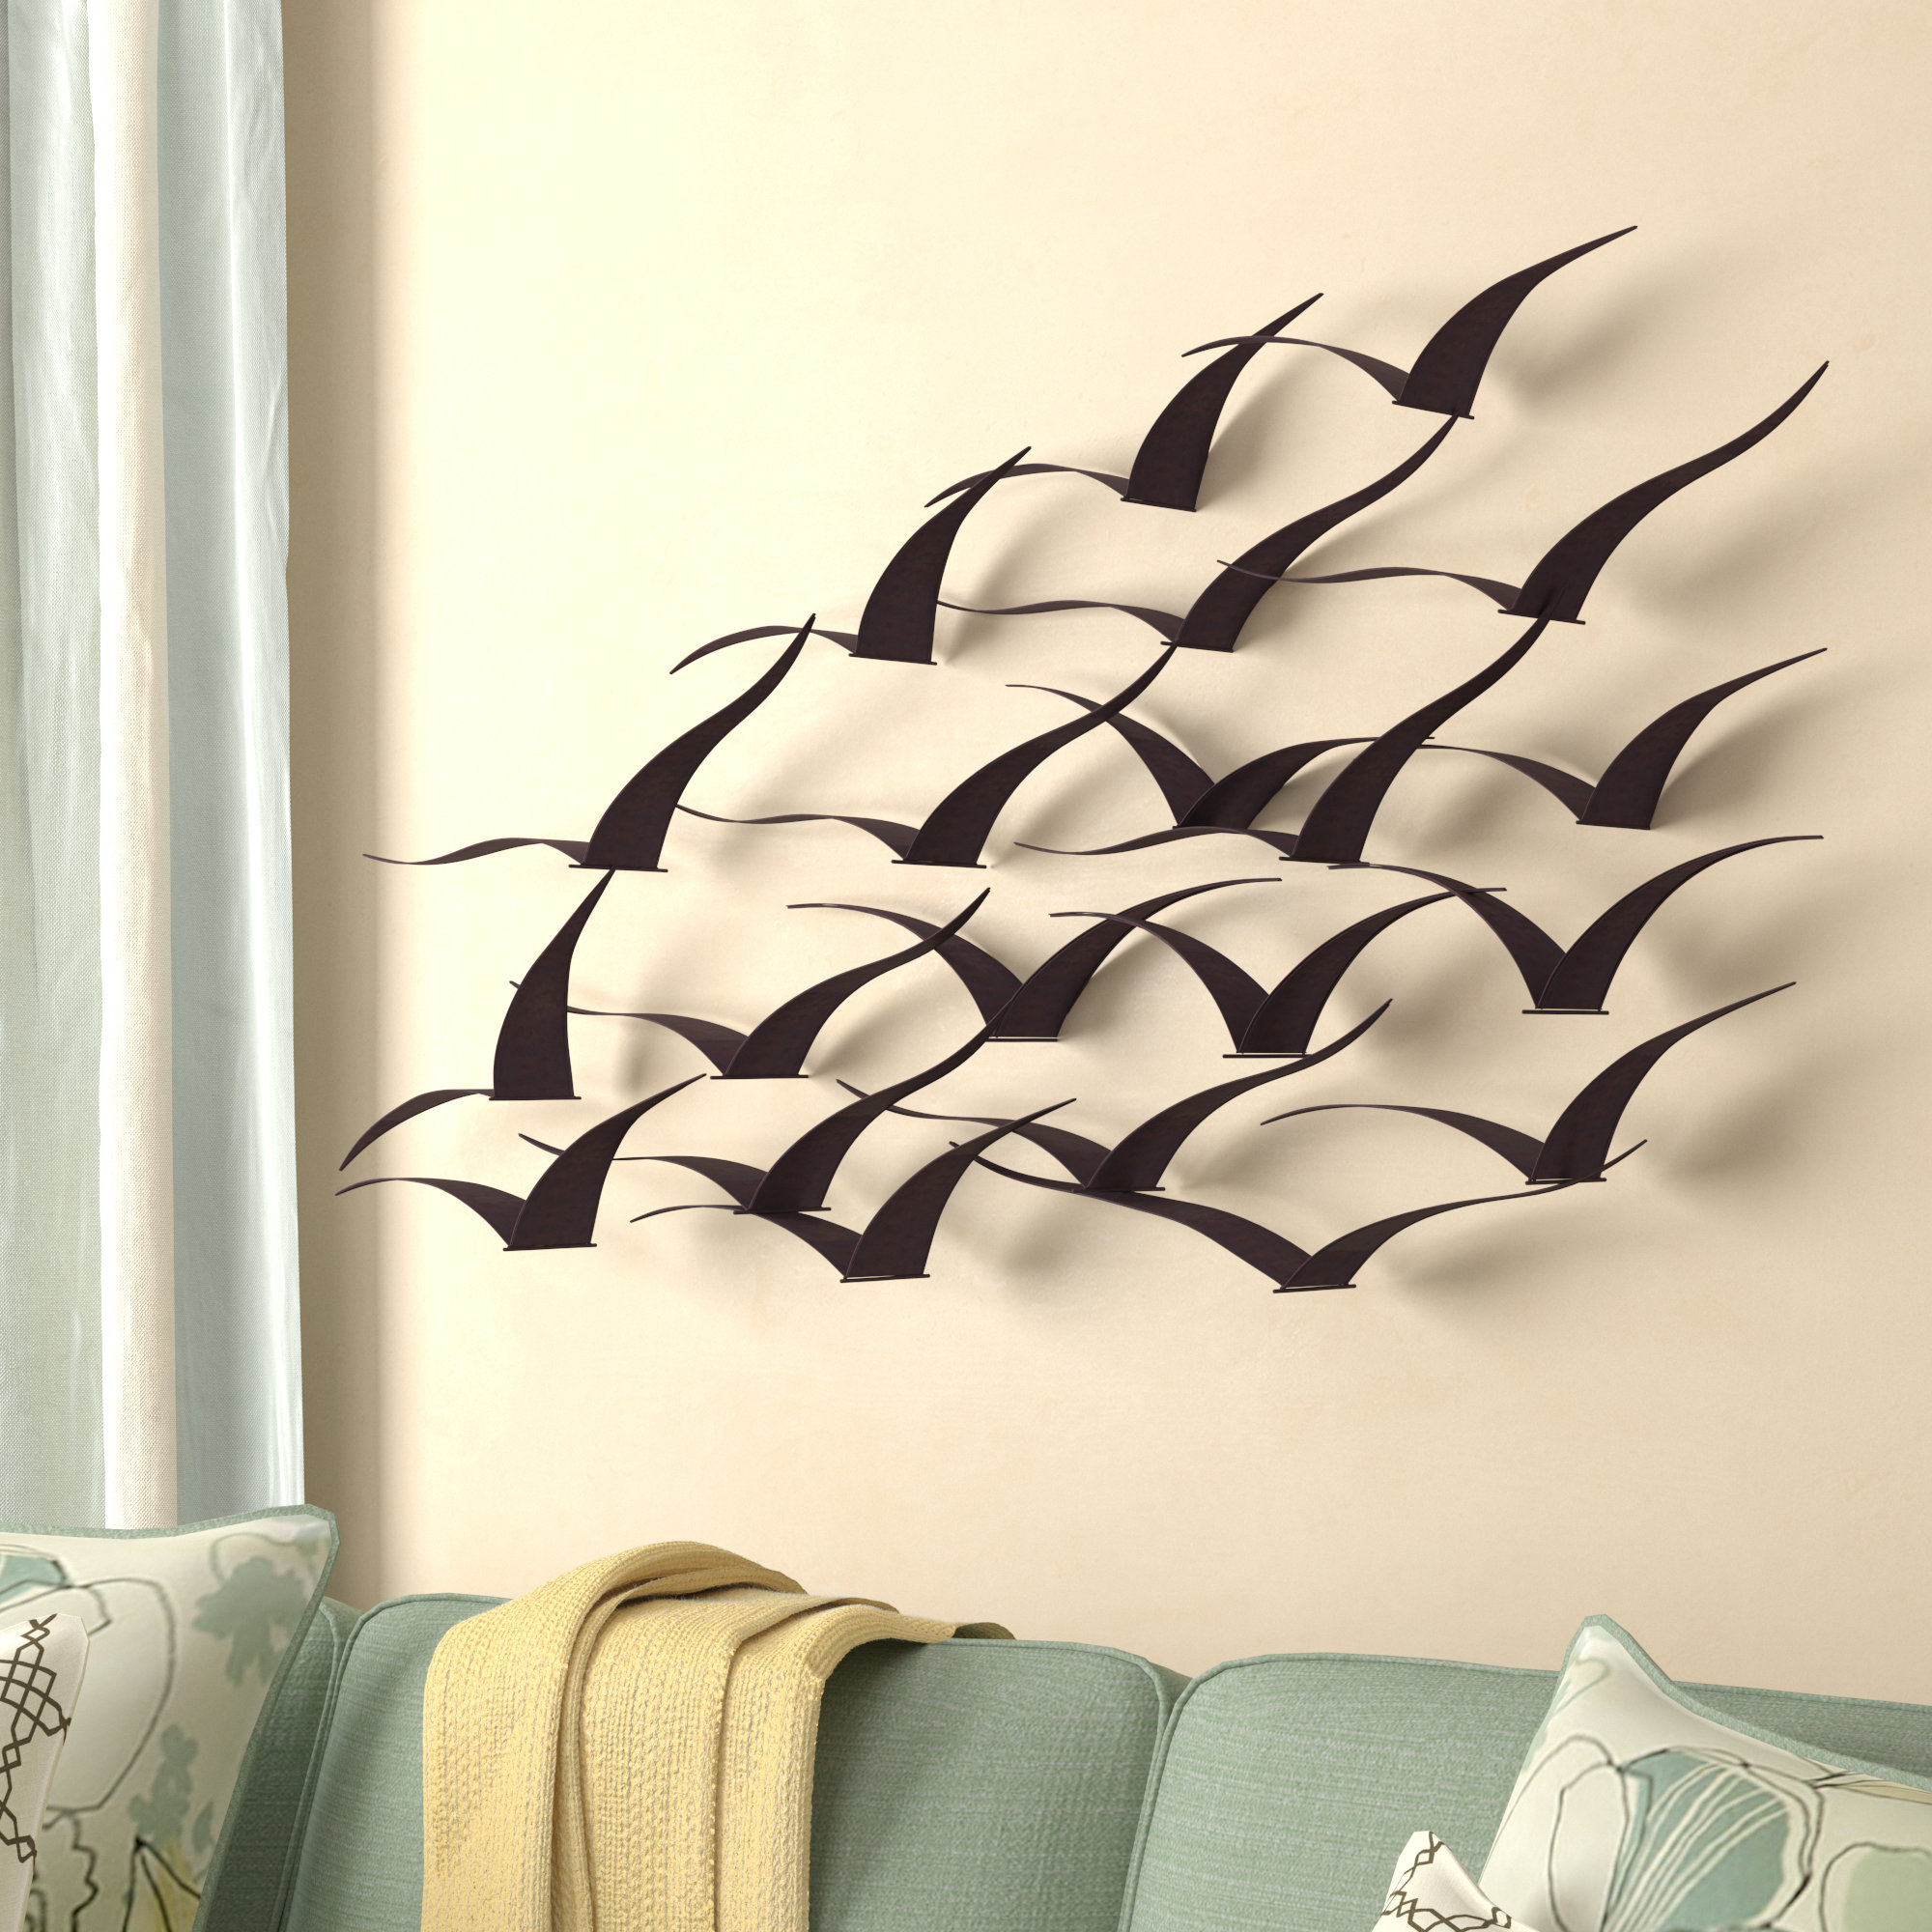 Alvis Traditional Metal Wall Decor Pertaining To Well Liked Beachcrest Home Birds Wall Décor & Reviews (View 7 of 20)